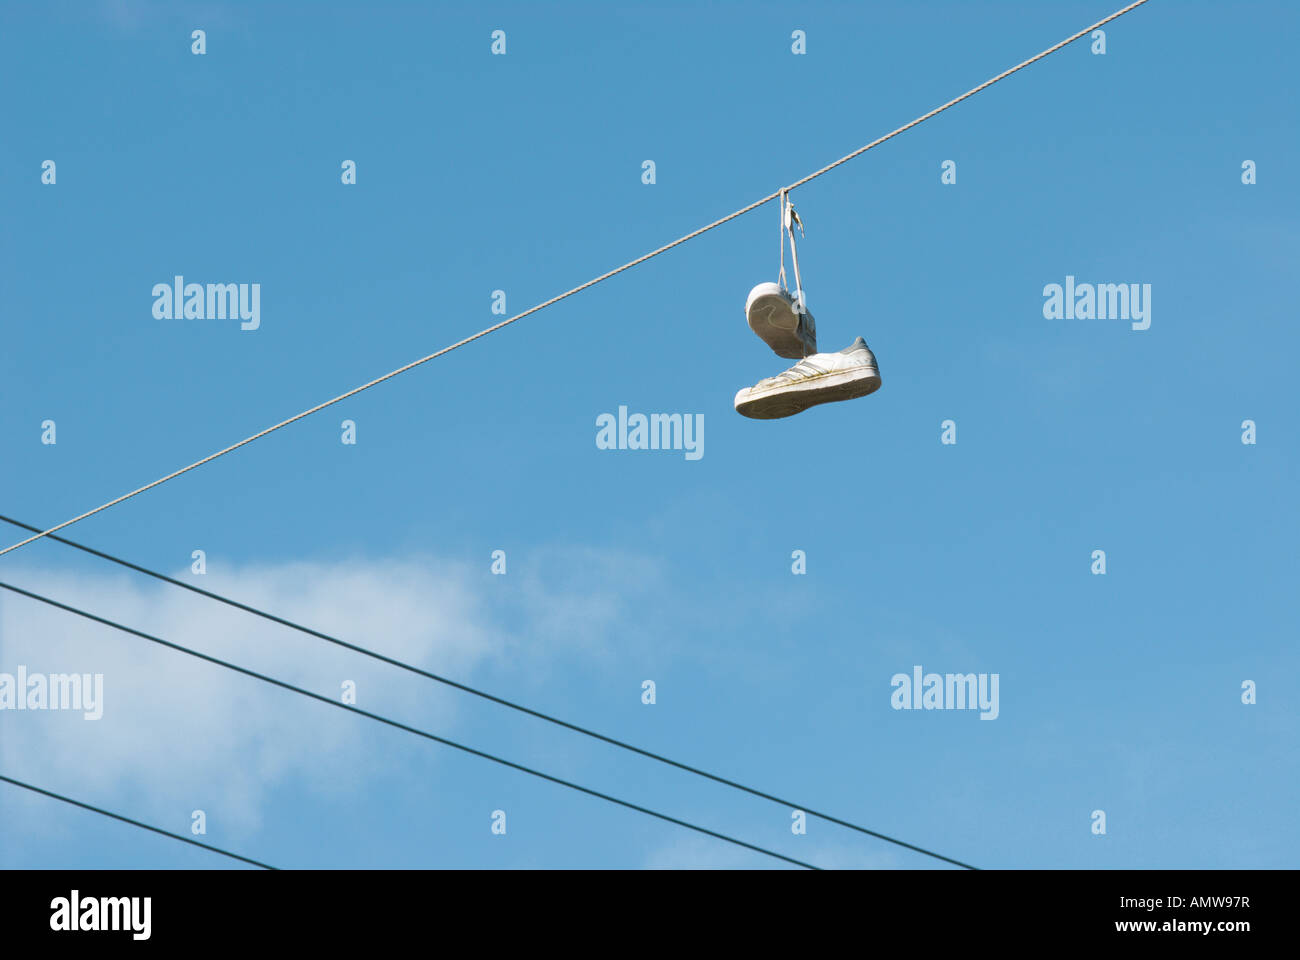 A pair of white sneakers hanging from overhead power lines after being thrown there as a teenage prank - Stock Image